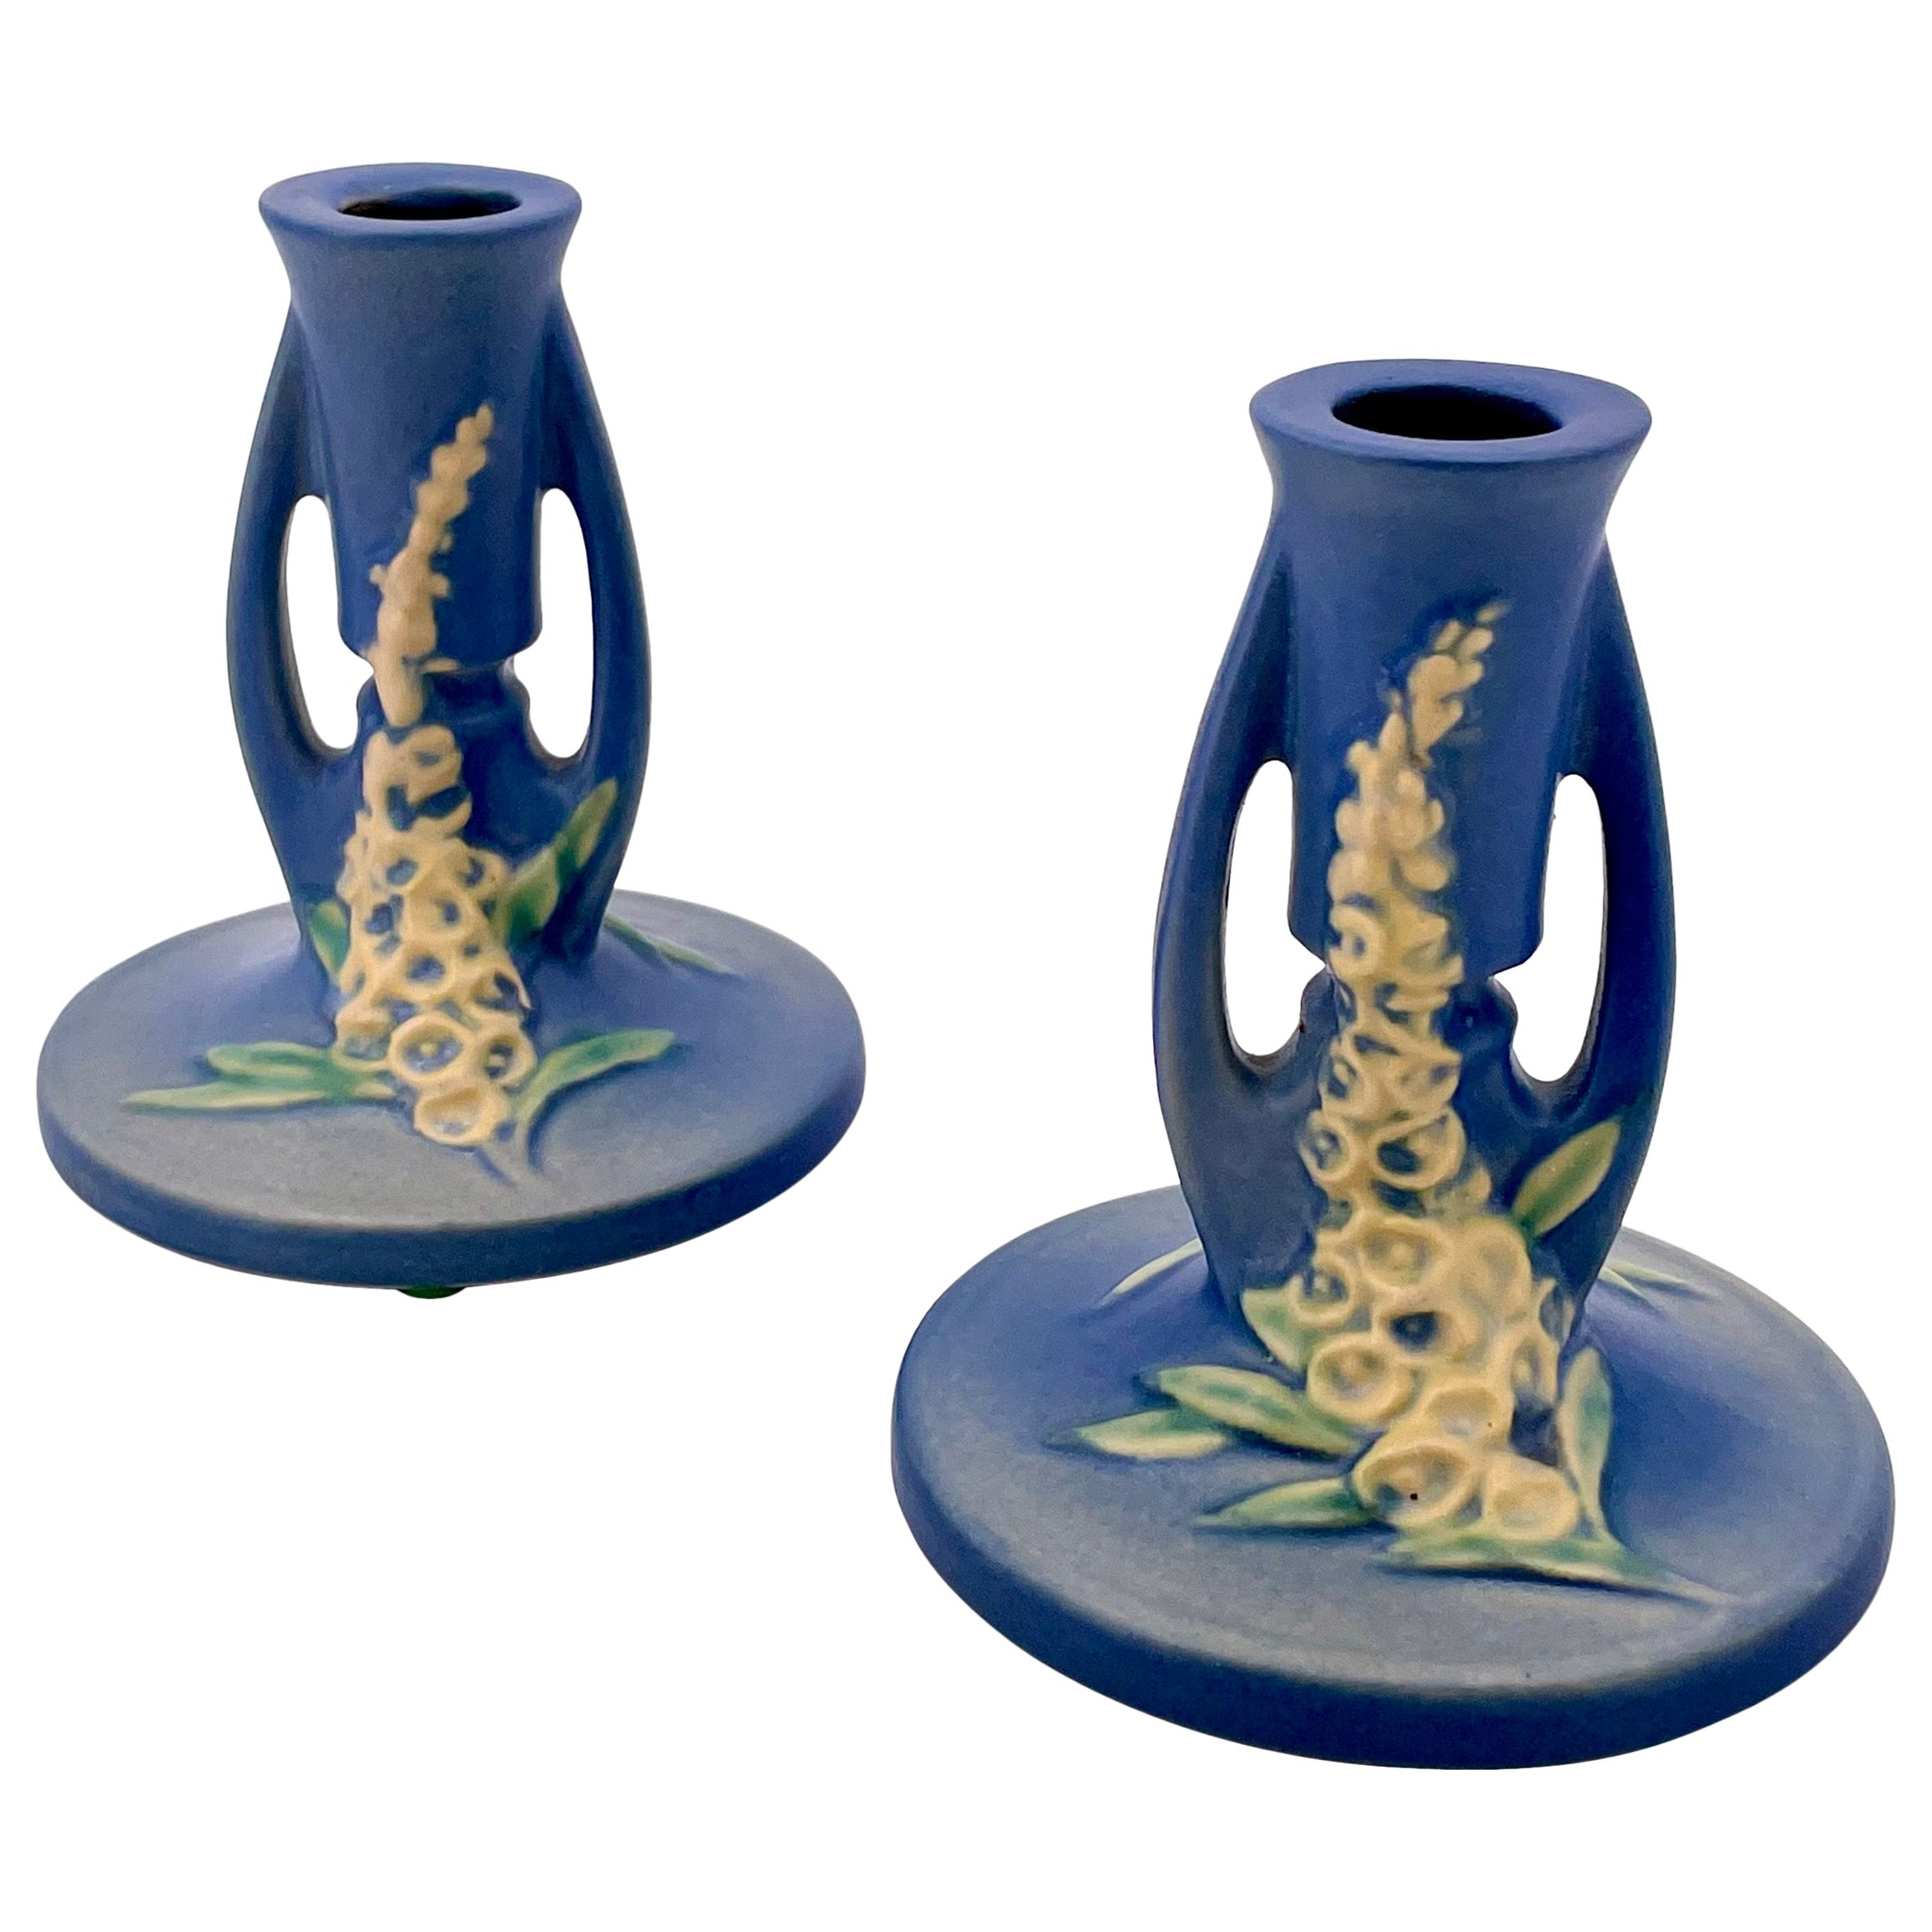 Roseville Pottery Arts & Crafts Pair of Candleholders